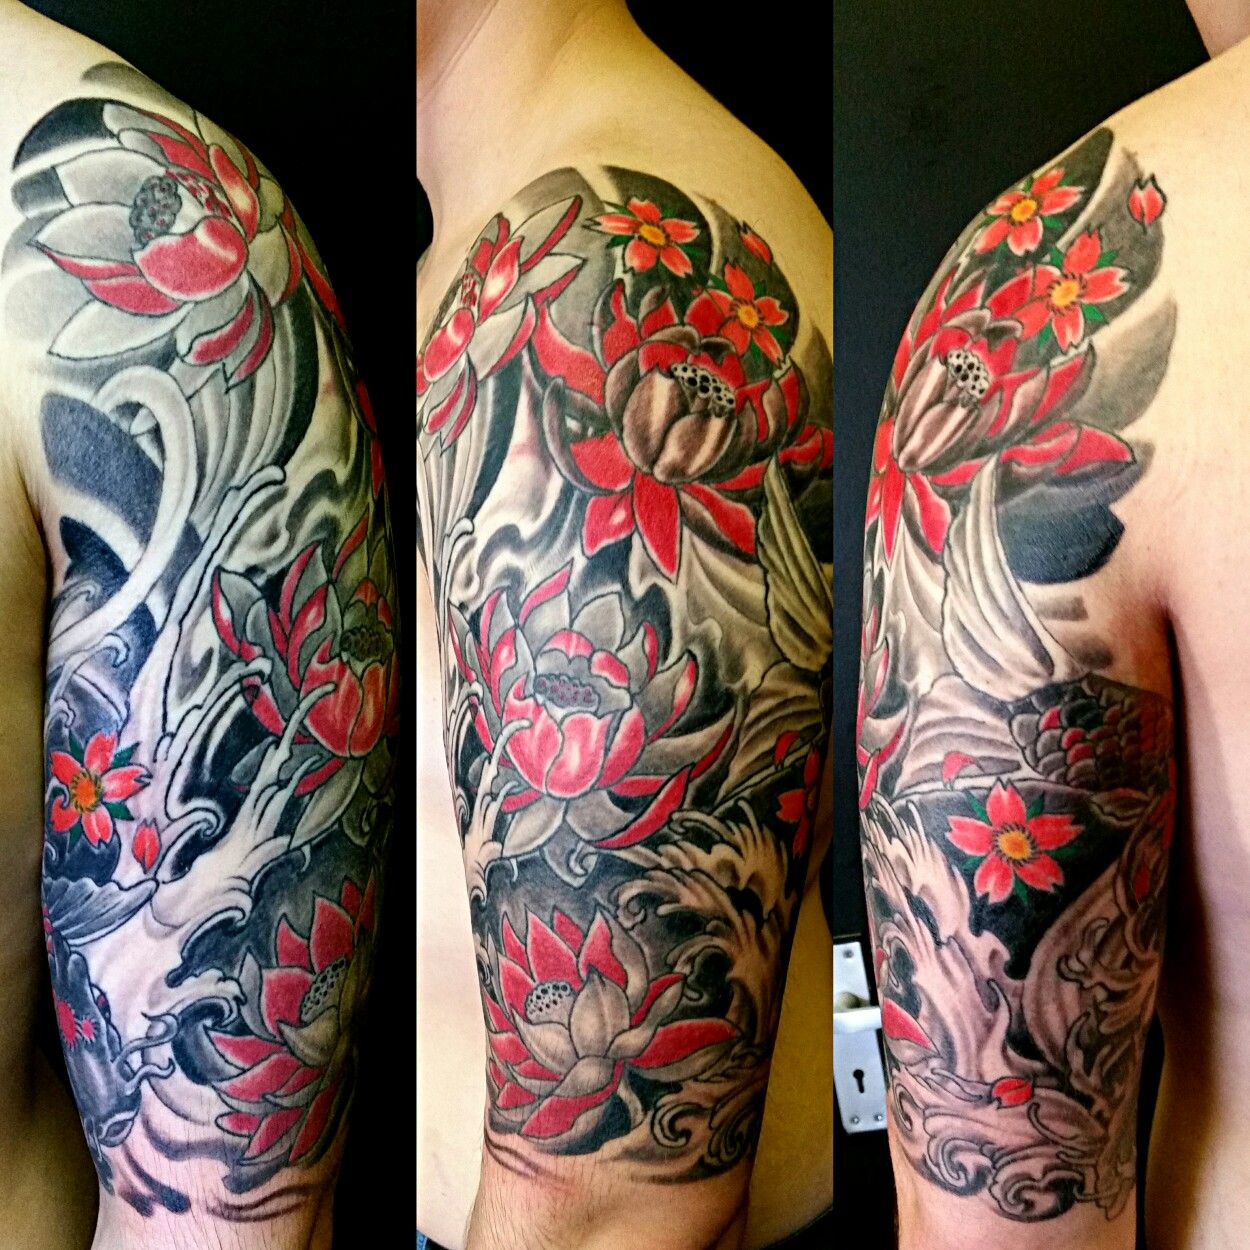 Top Arm Part Of Irezumi Traditional Japanese Half Sleeve Freehand